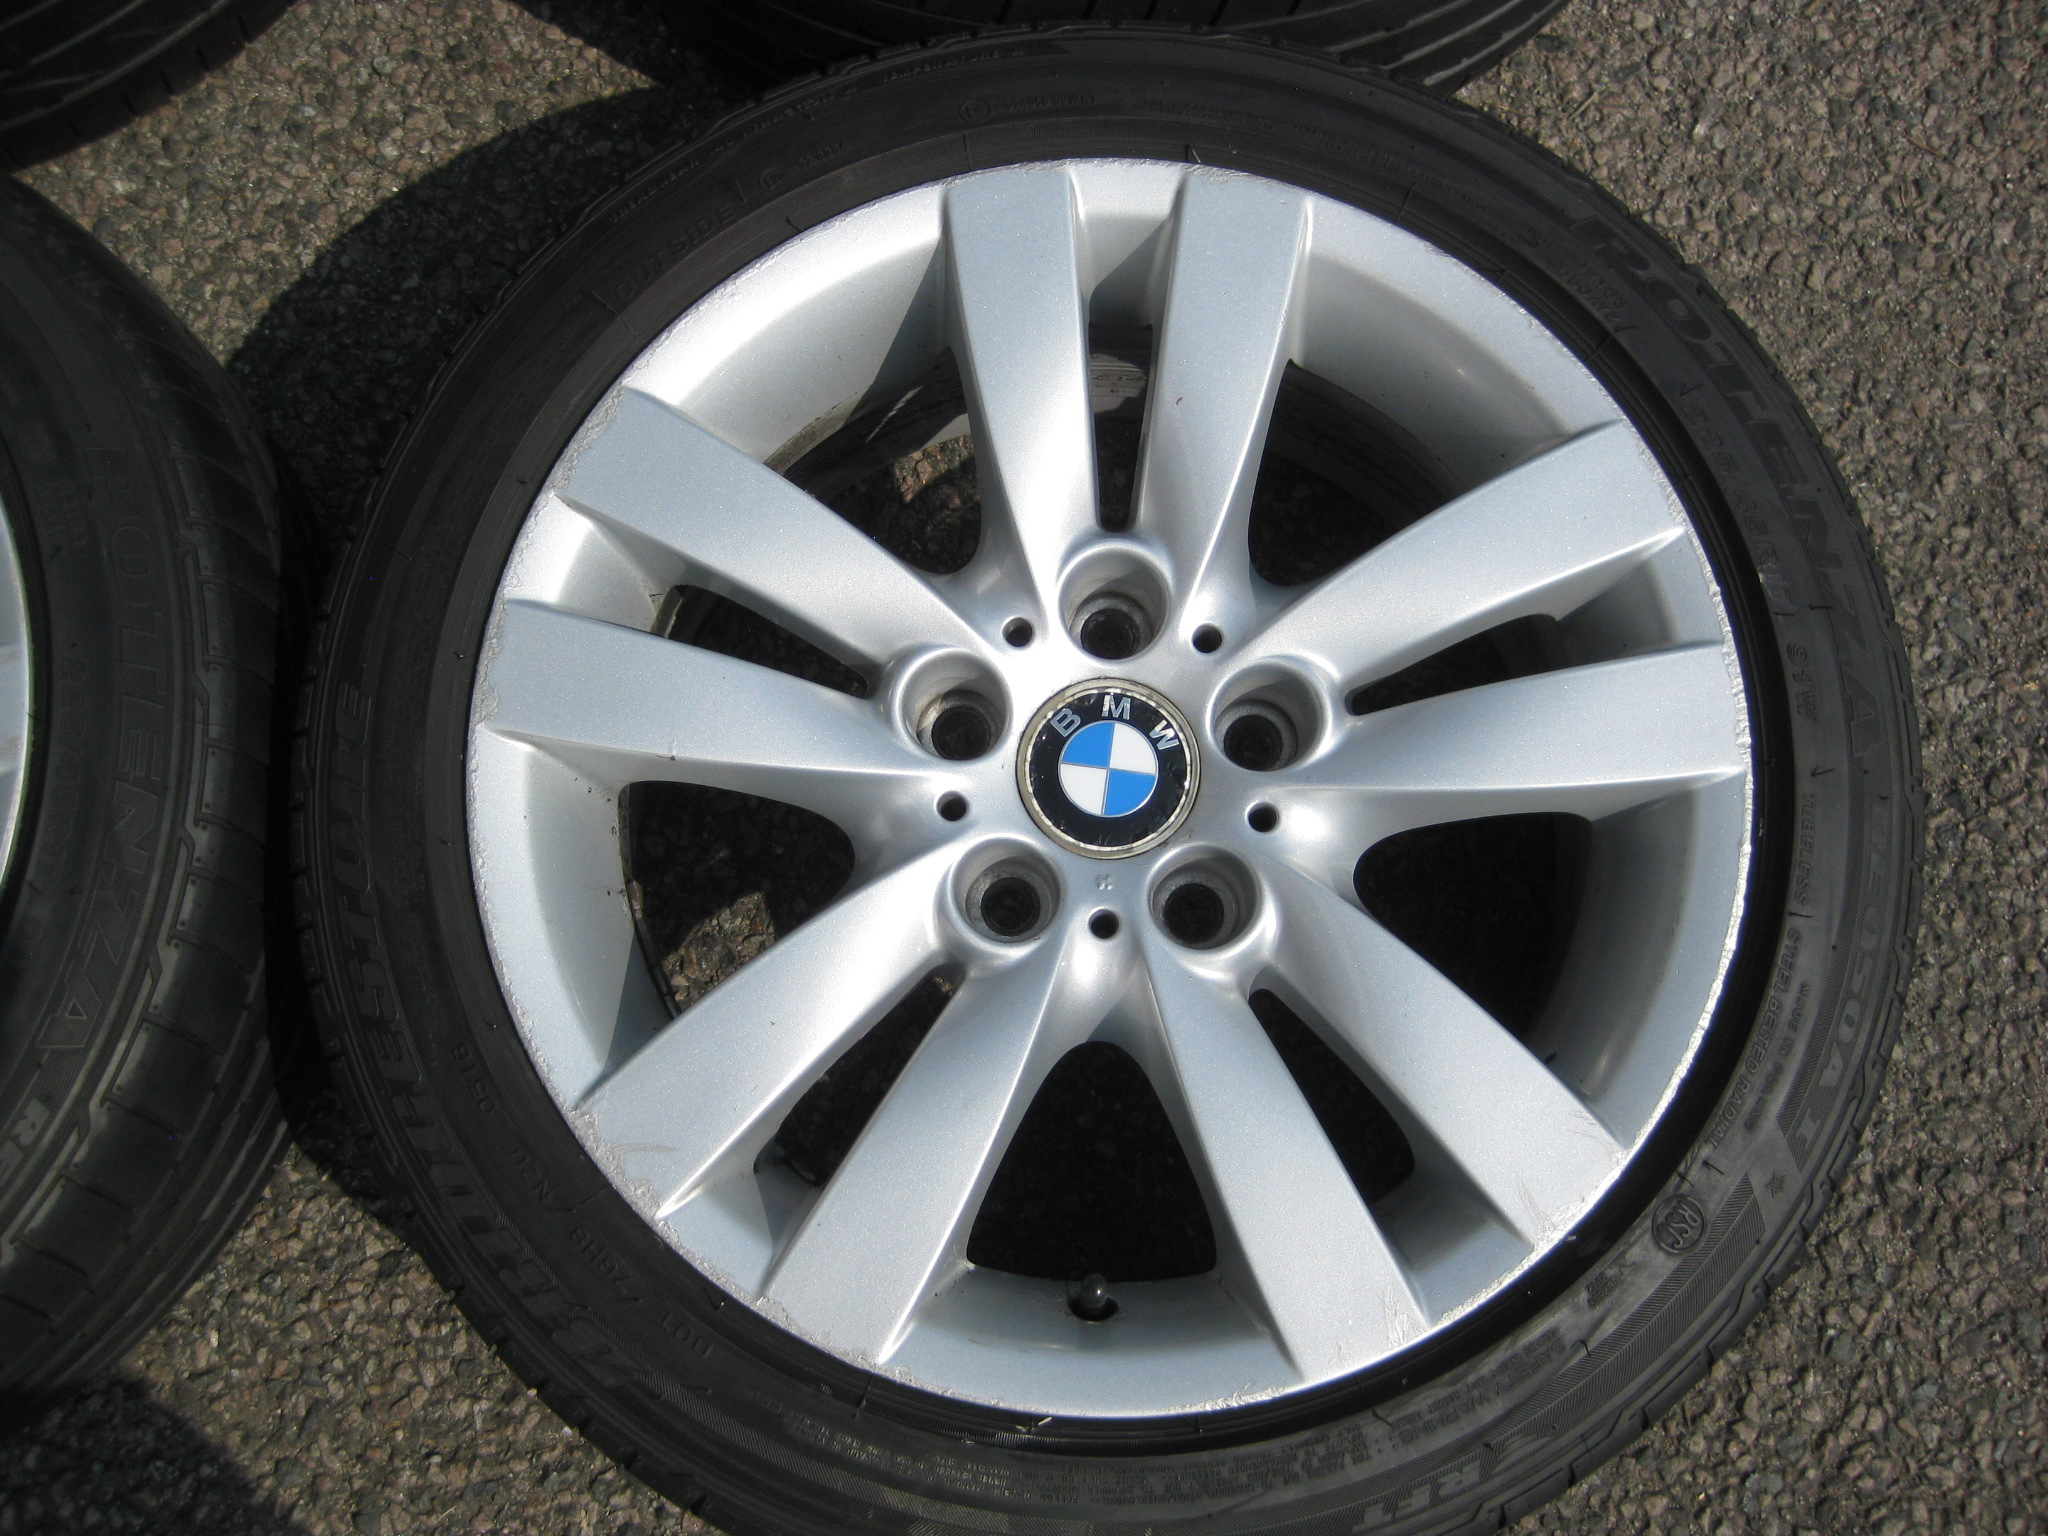 "USED 17"" GENUINE BMW STYLE 161 E9X DOUBLE SPOKE ALLOY WHEELS, WIDER REAR, CLEAN INC RUNFLAT TYRES"